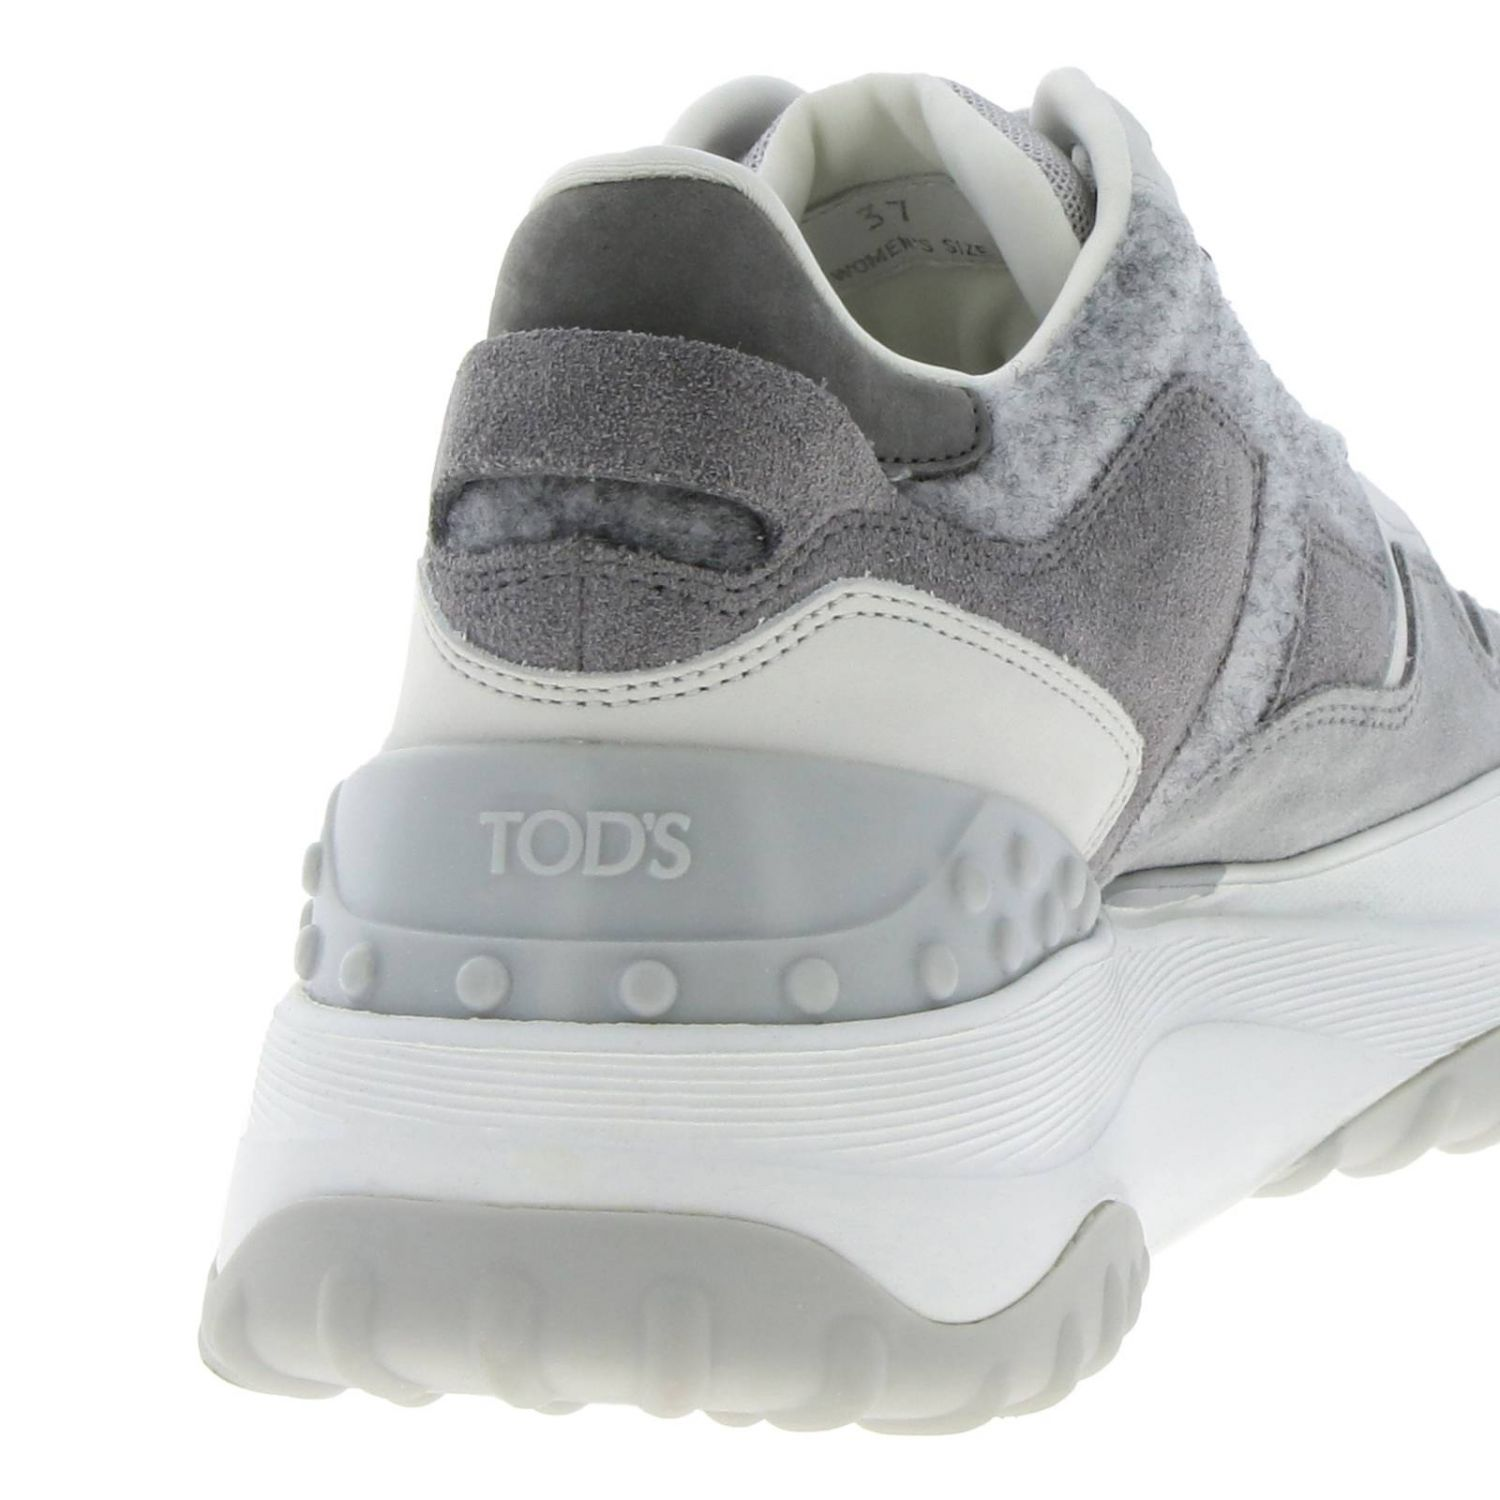 Tod's Sport sneakers in smooth suede and wool with maxi rubber sole grey 4